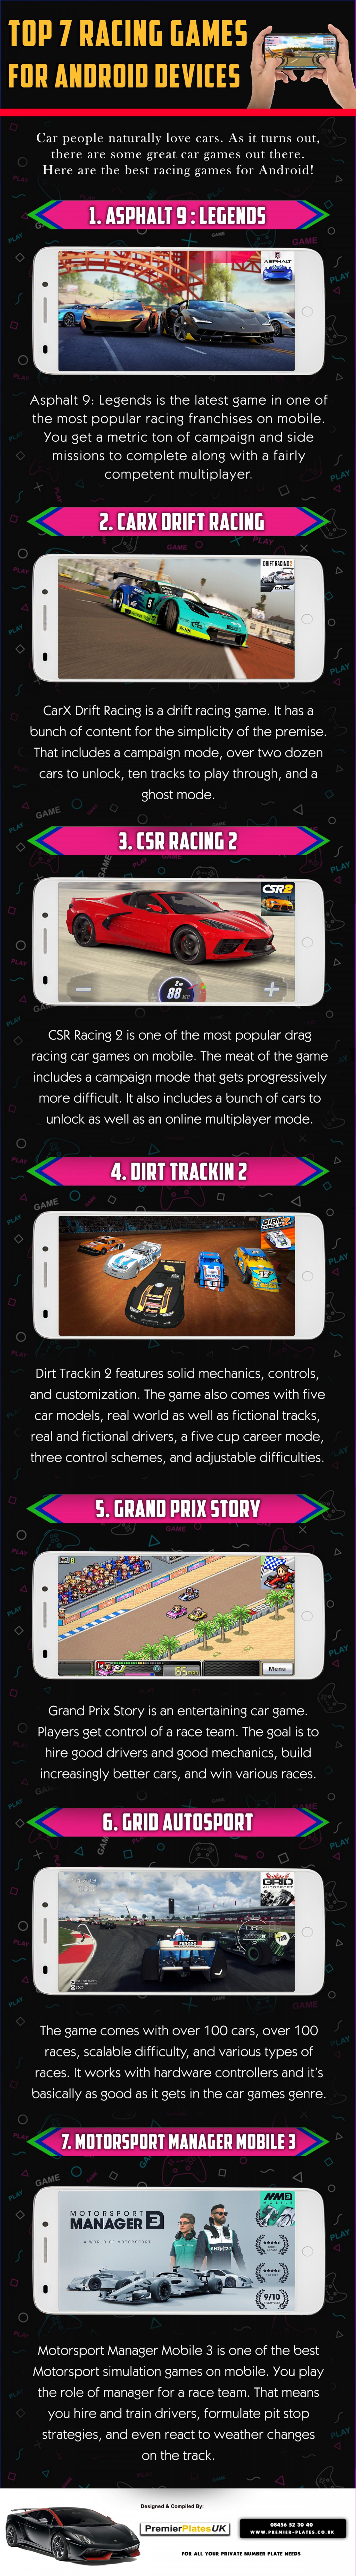 Top 7 racing games for Android devices Infographic